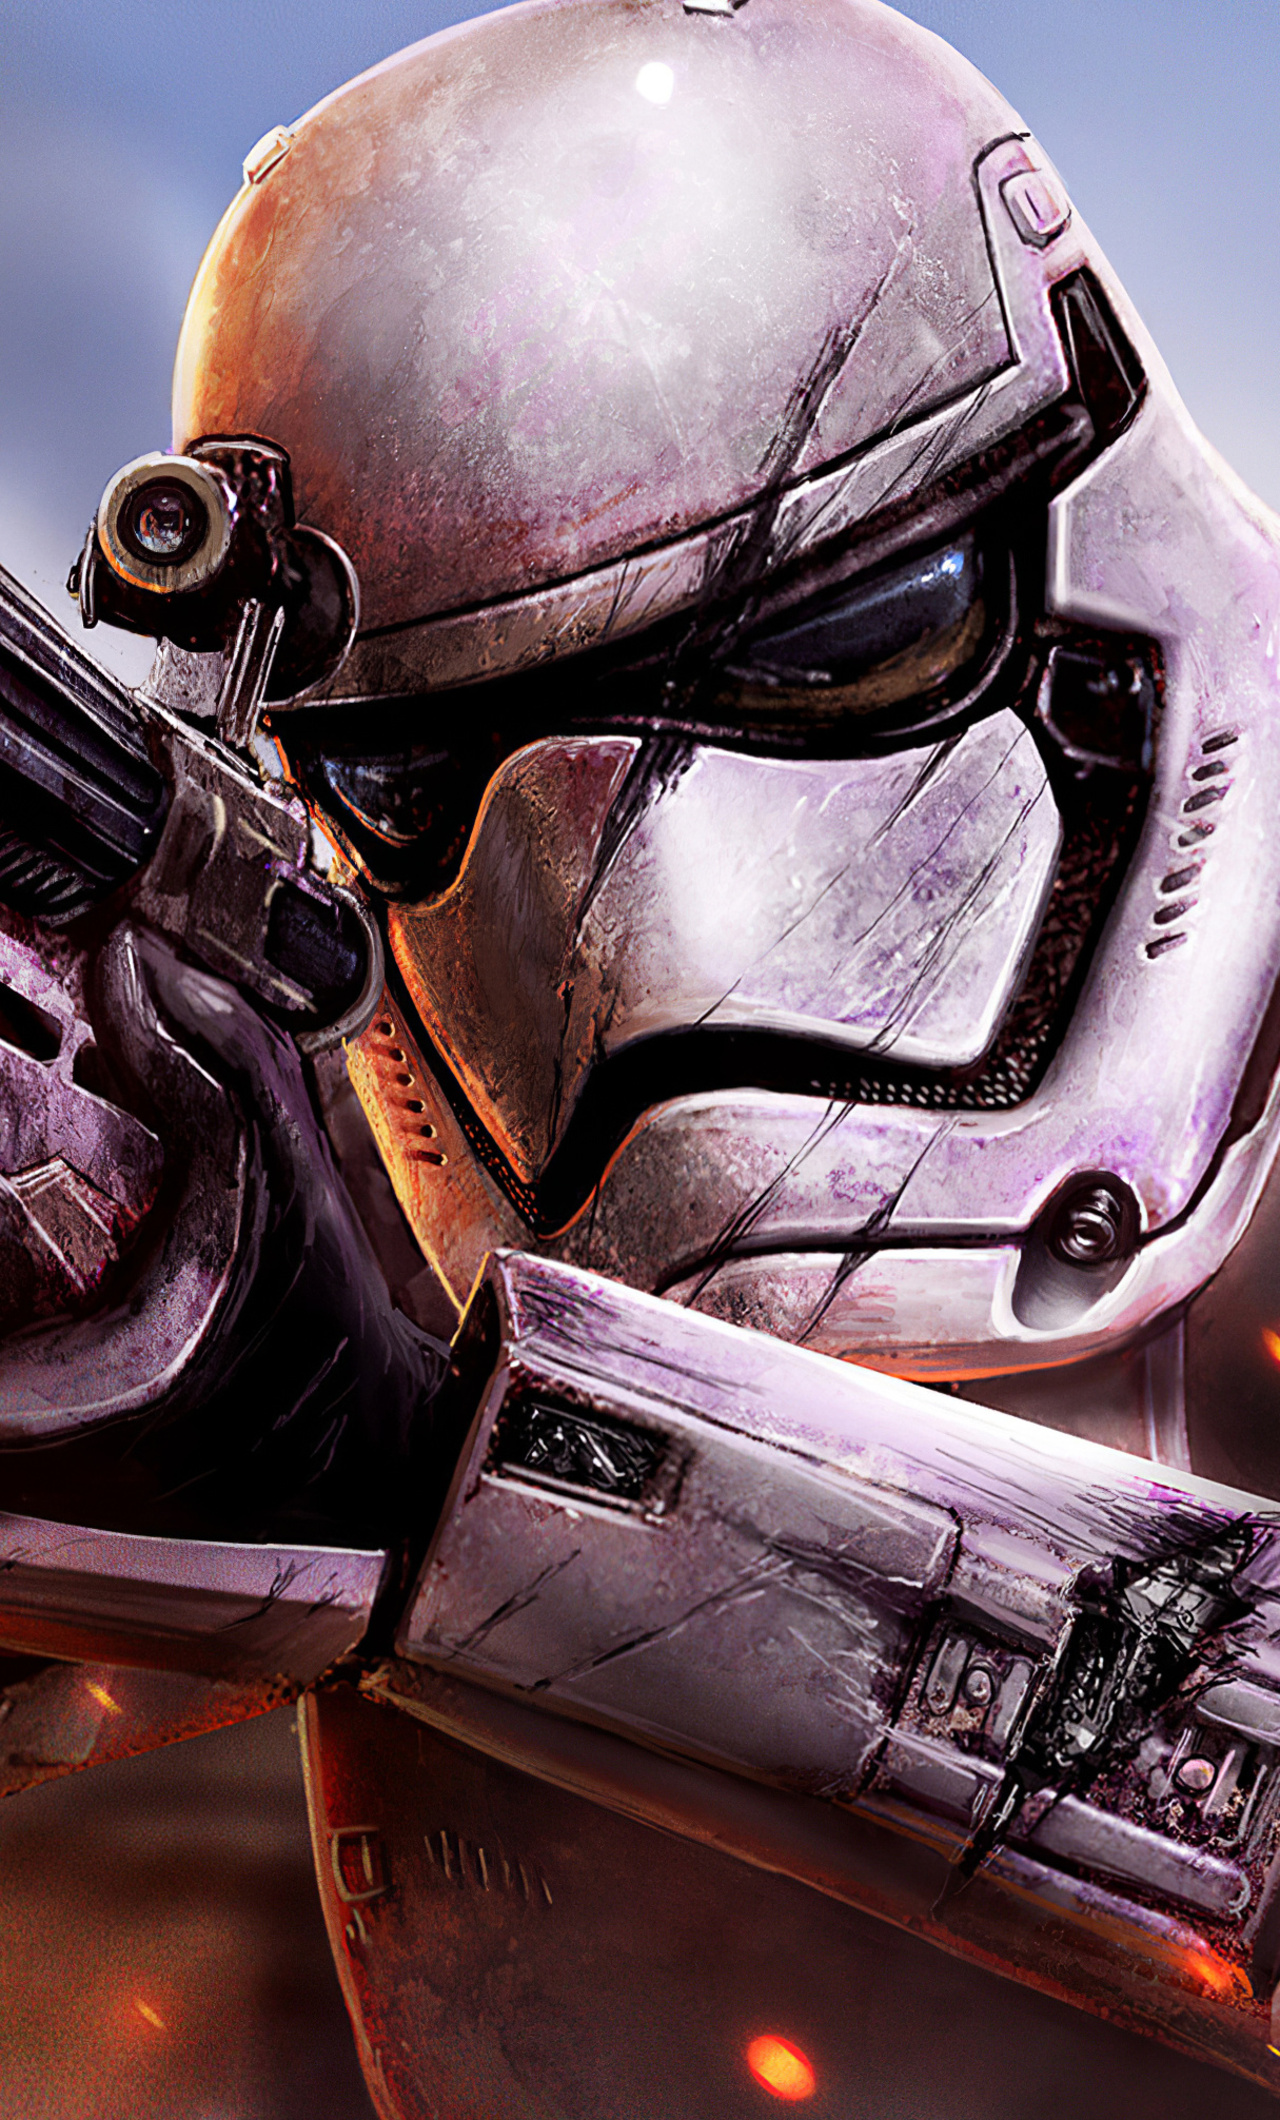 1280x2120 Star Wars Battlefront Stormtrooper Iphone 6 Hd 4k Wallpapers Images Backgrounds Photos And Pictures